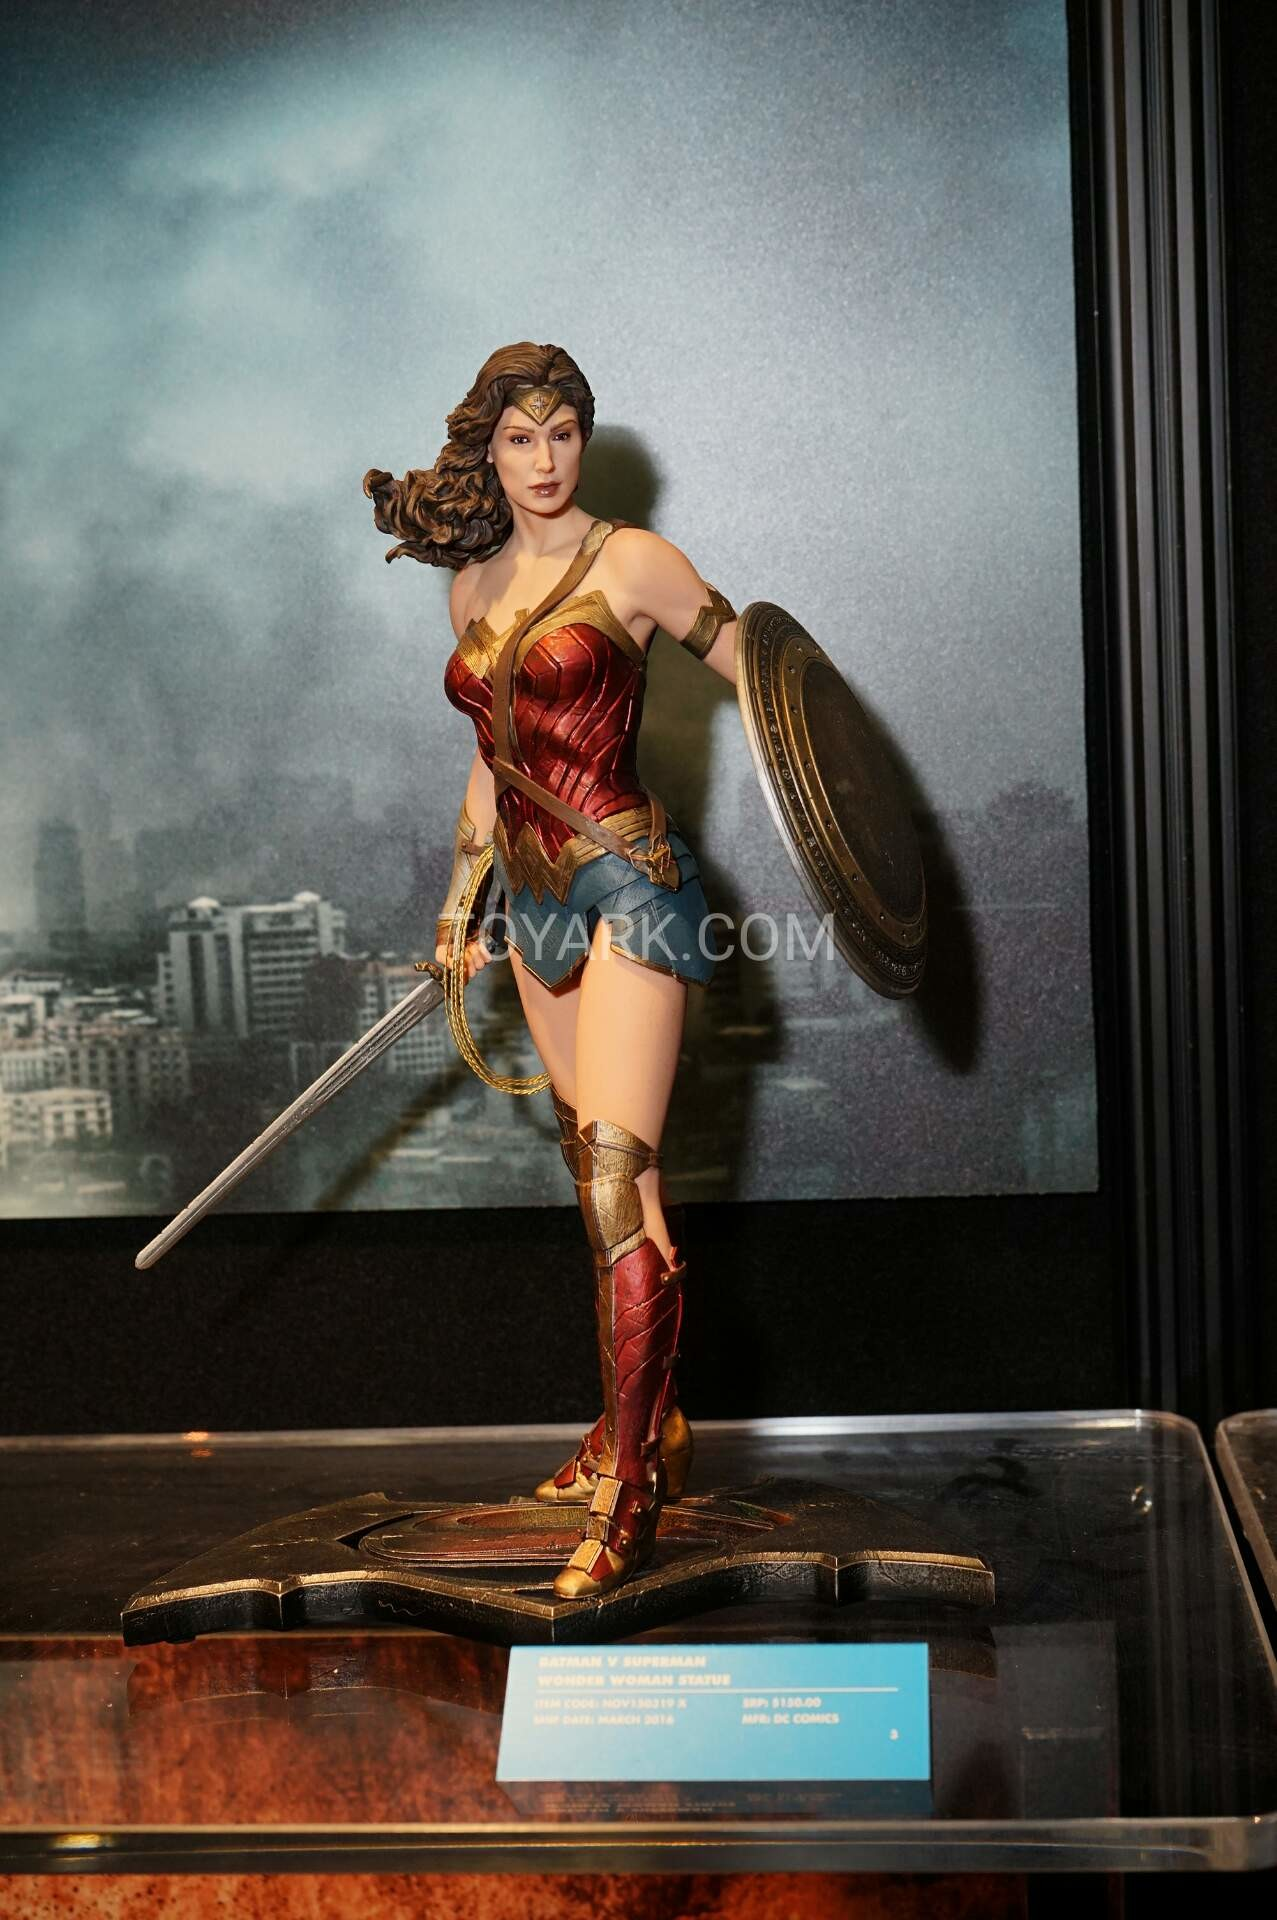 Batman V Superman DOJ Wonderwoman Statue Displayed At NY Toyfair 2016 Pictures Taken By Toyark